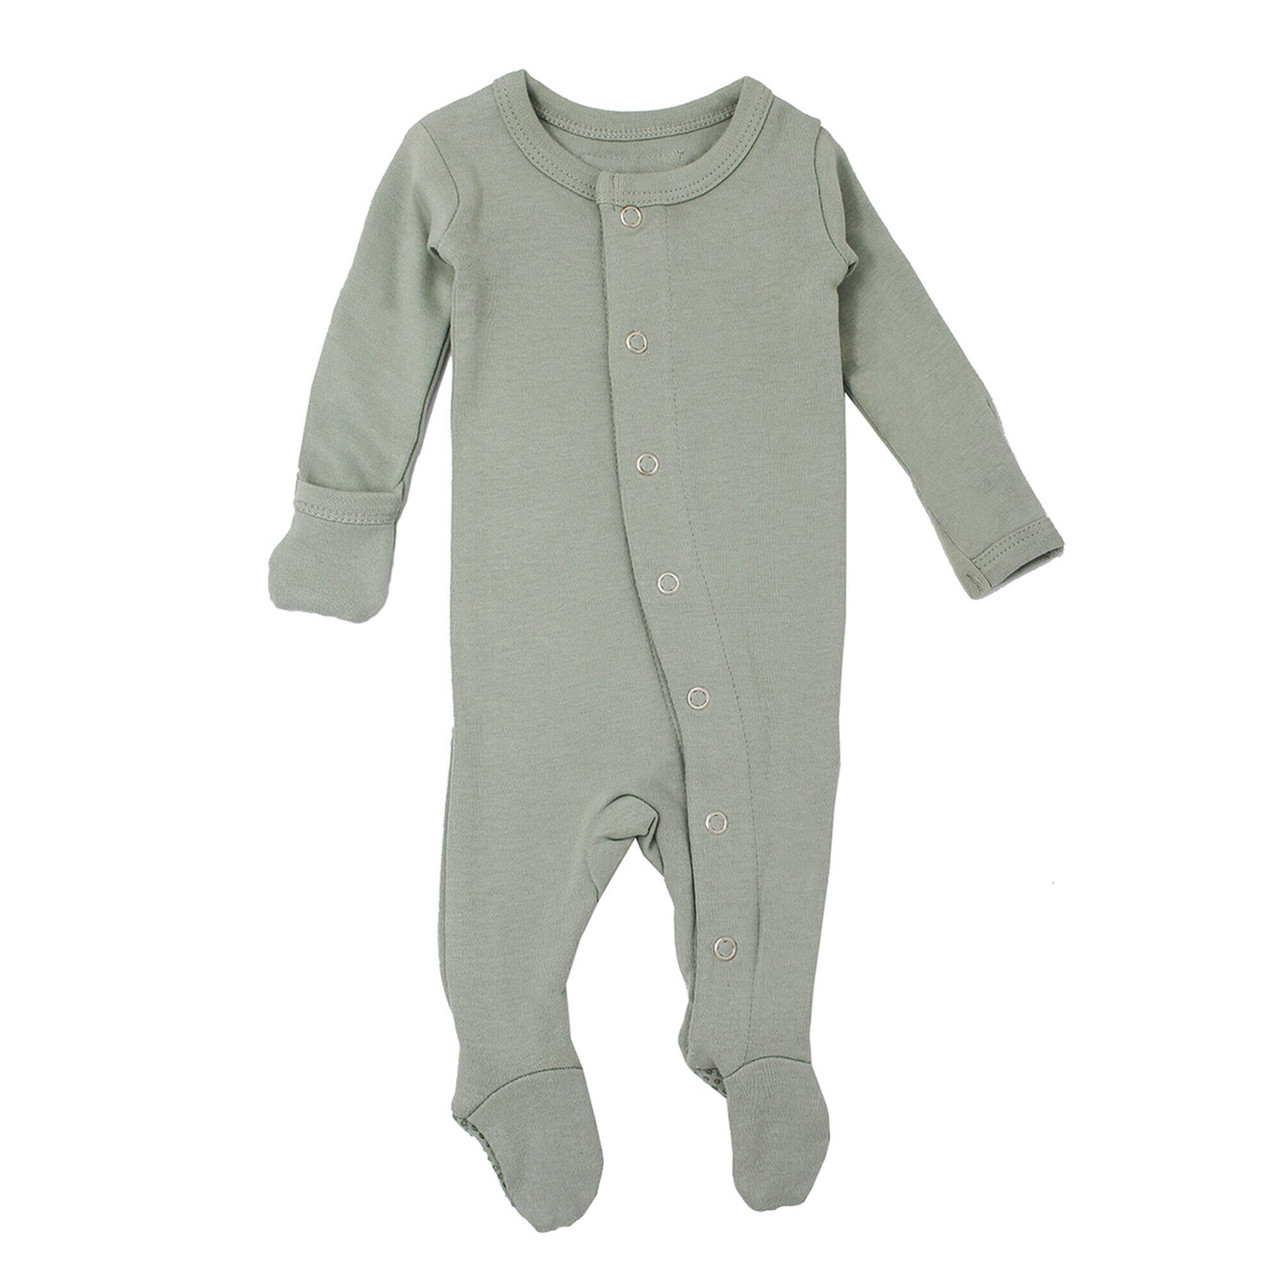 Organic Footed Overall in Seafoam, Flat